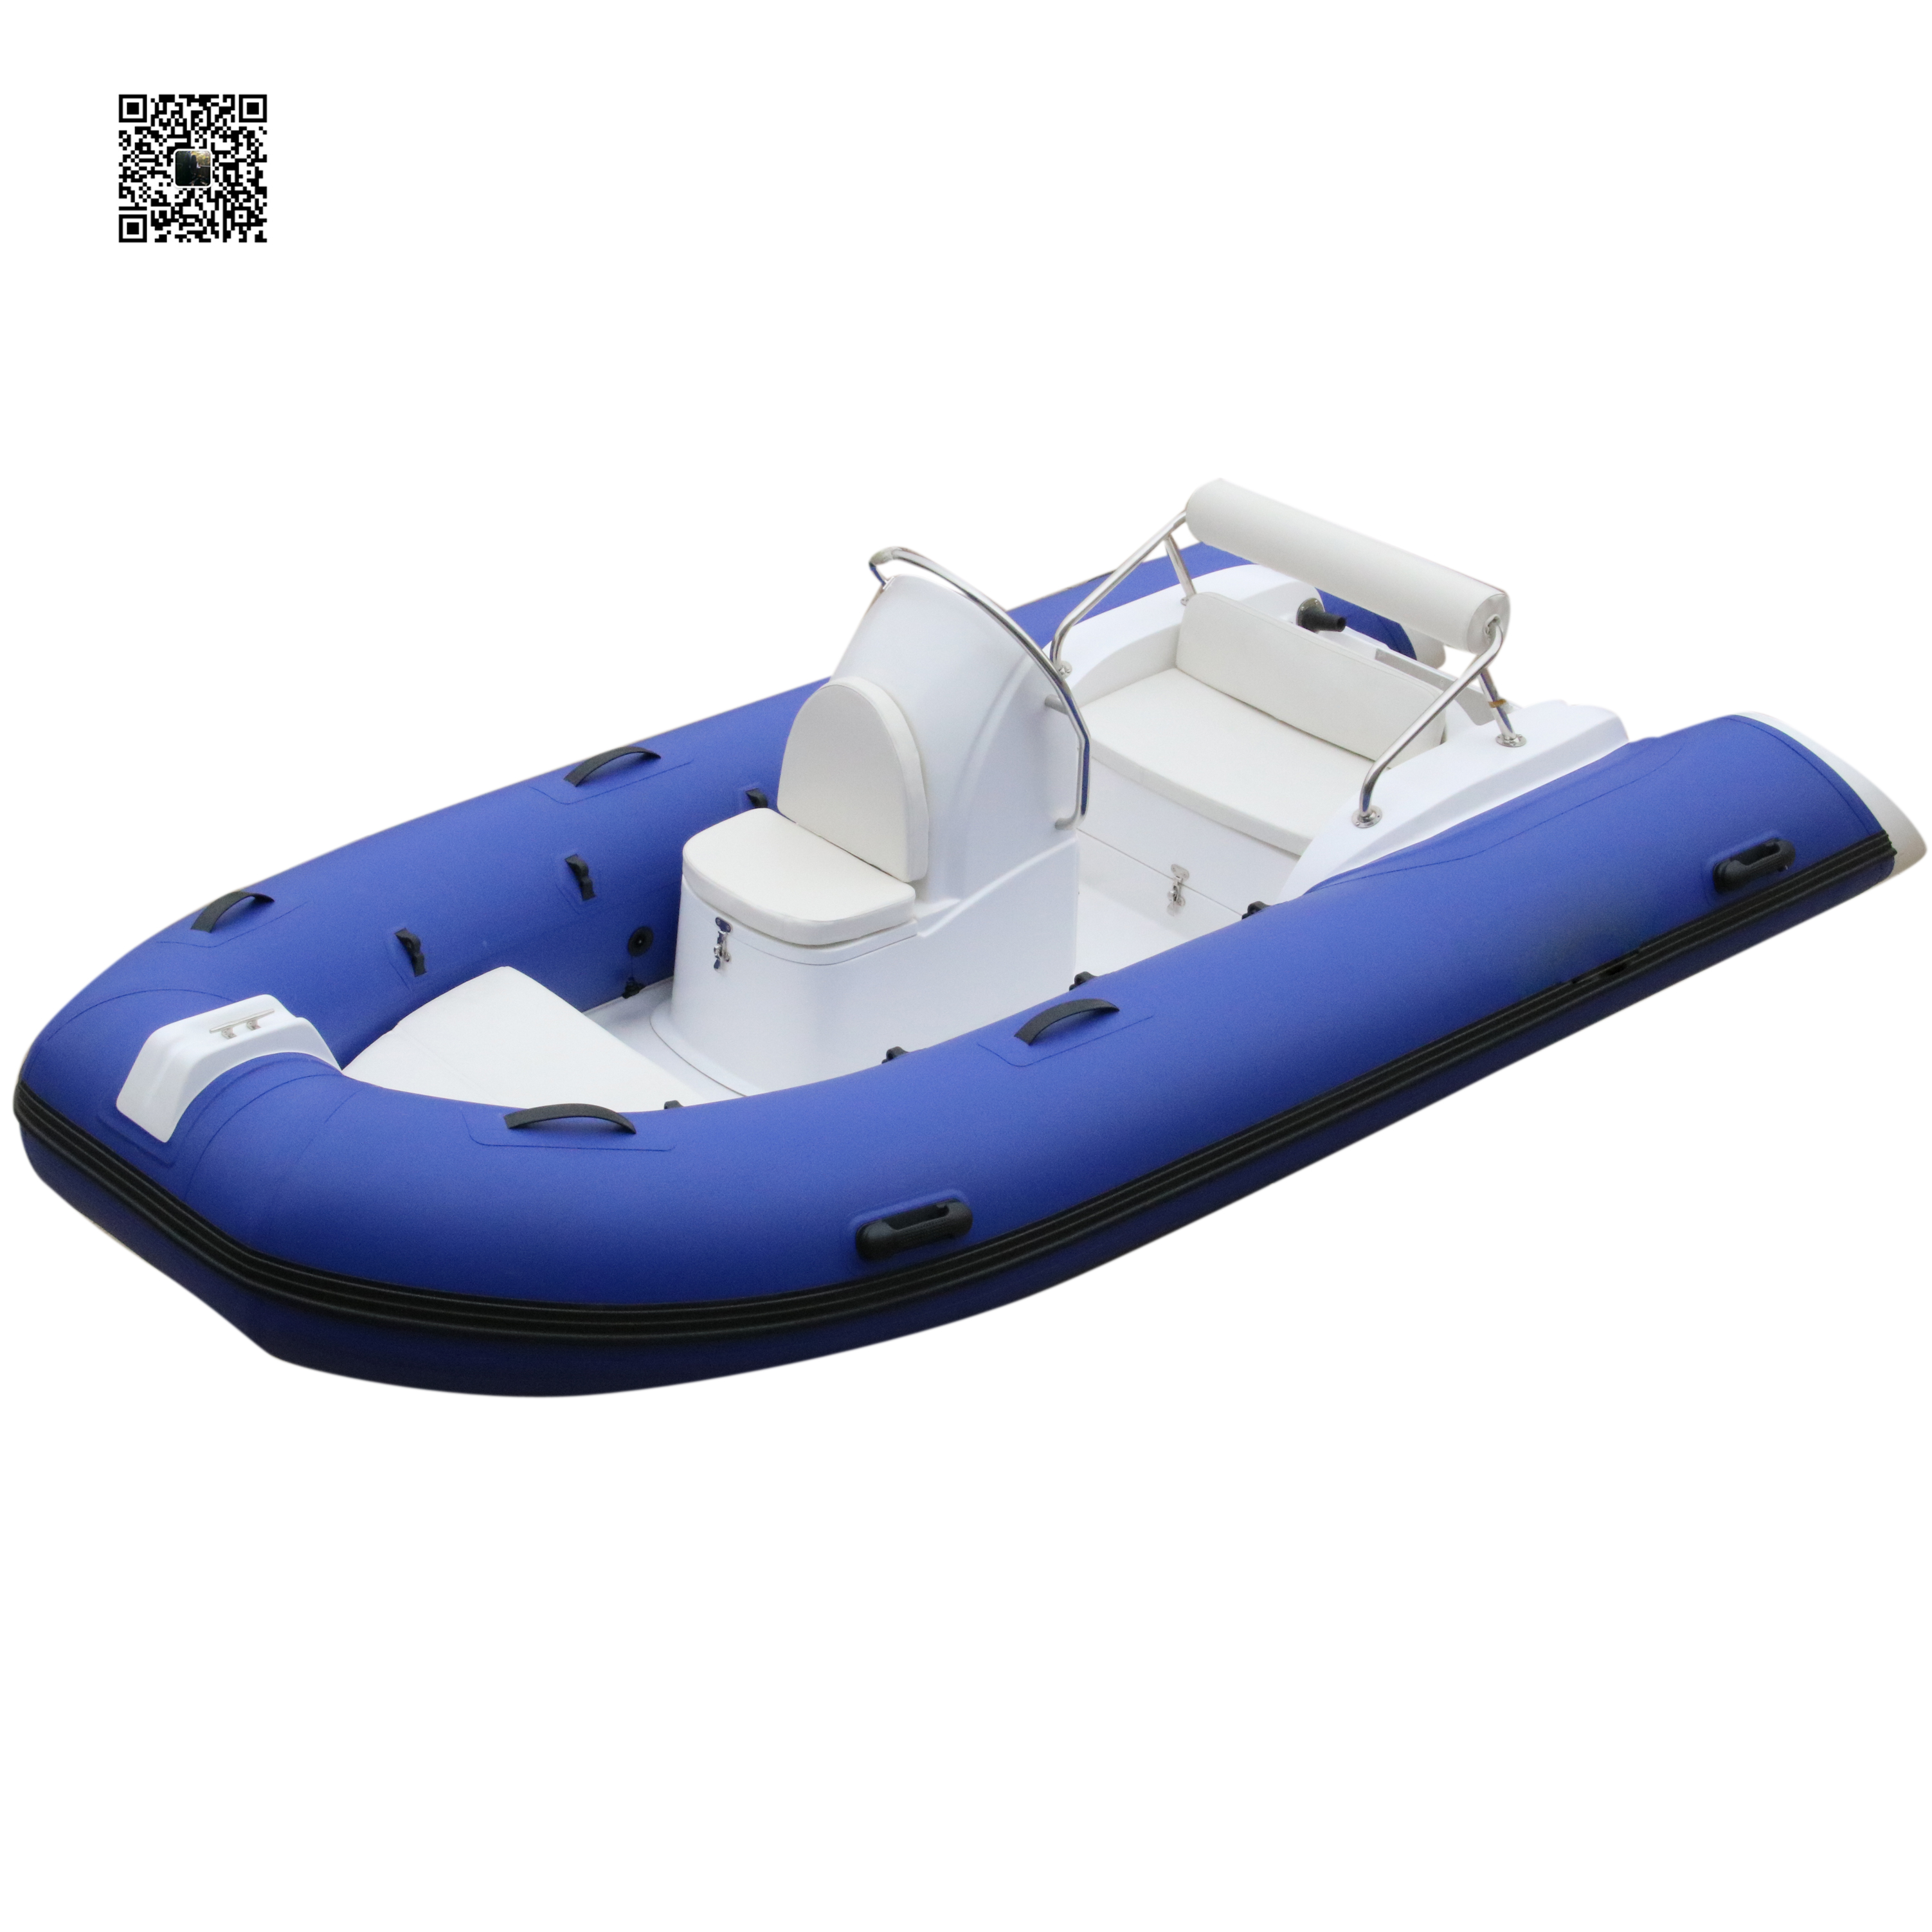 RIB390 Rib Sport Boat China High Quality For 5 People Hypalon Inflatable Boat In Rowing Boats